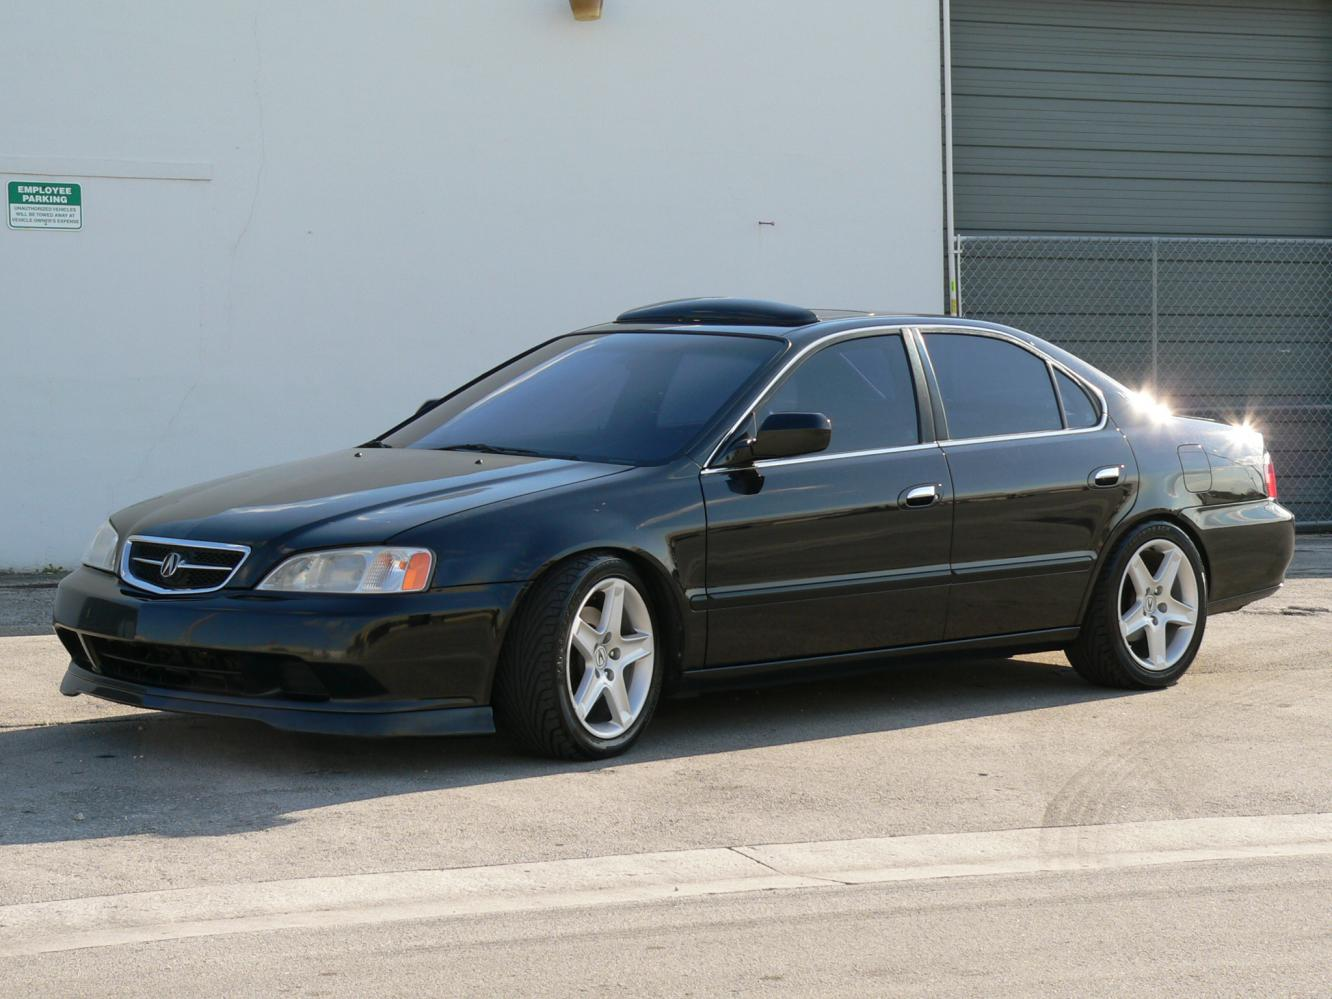 2000 Acura Tl Ii Pictures Information And Specs Auto Database Com